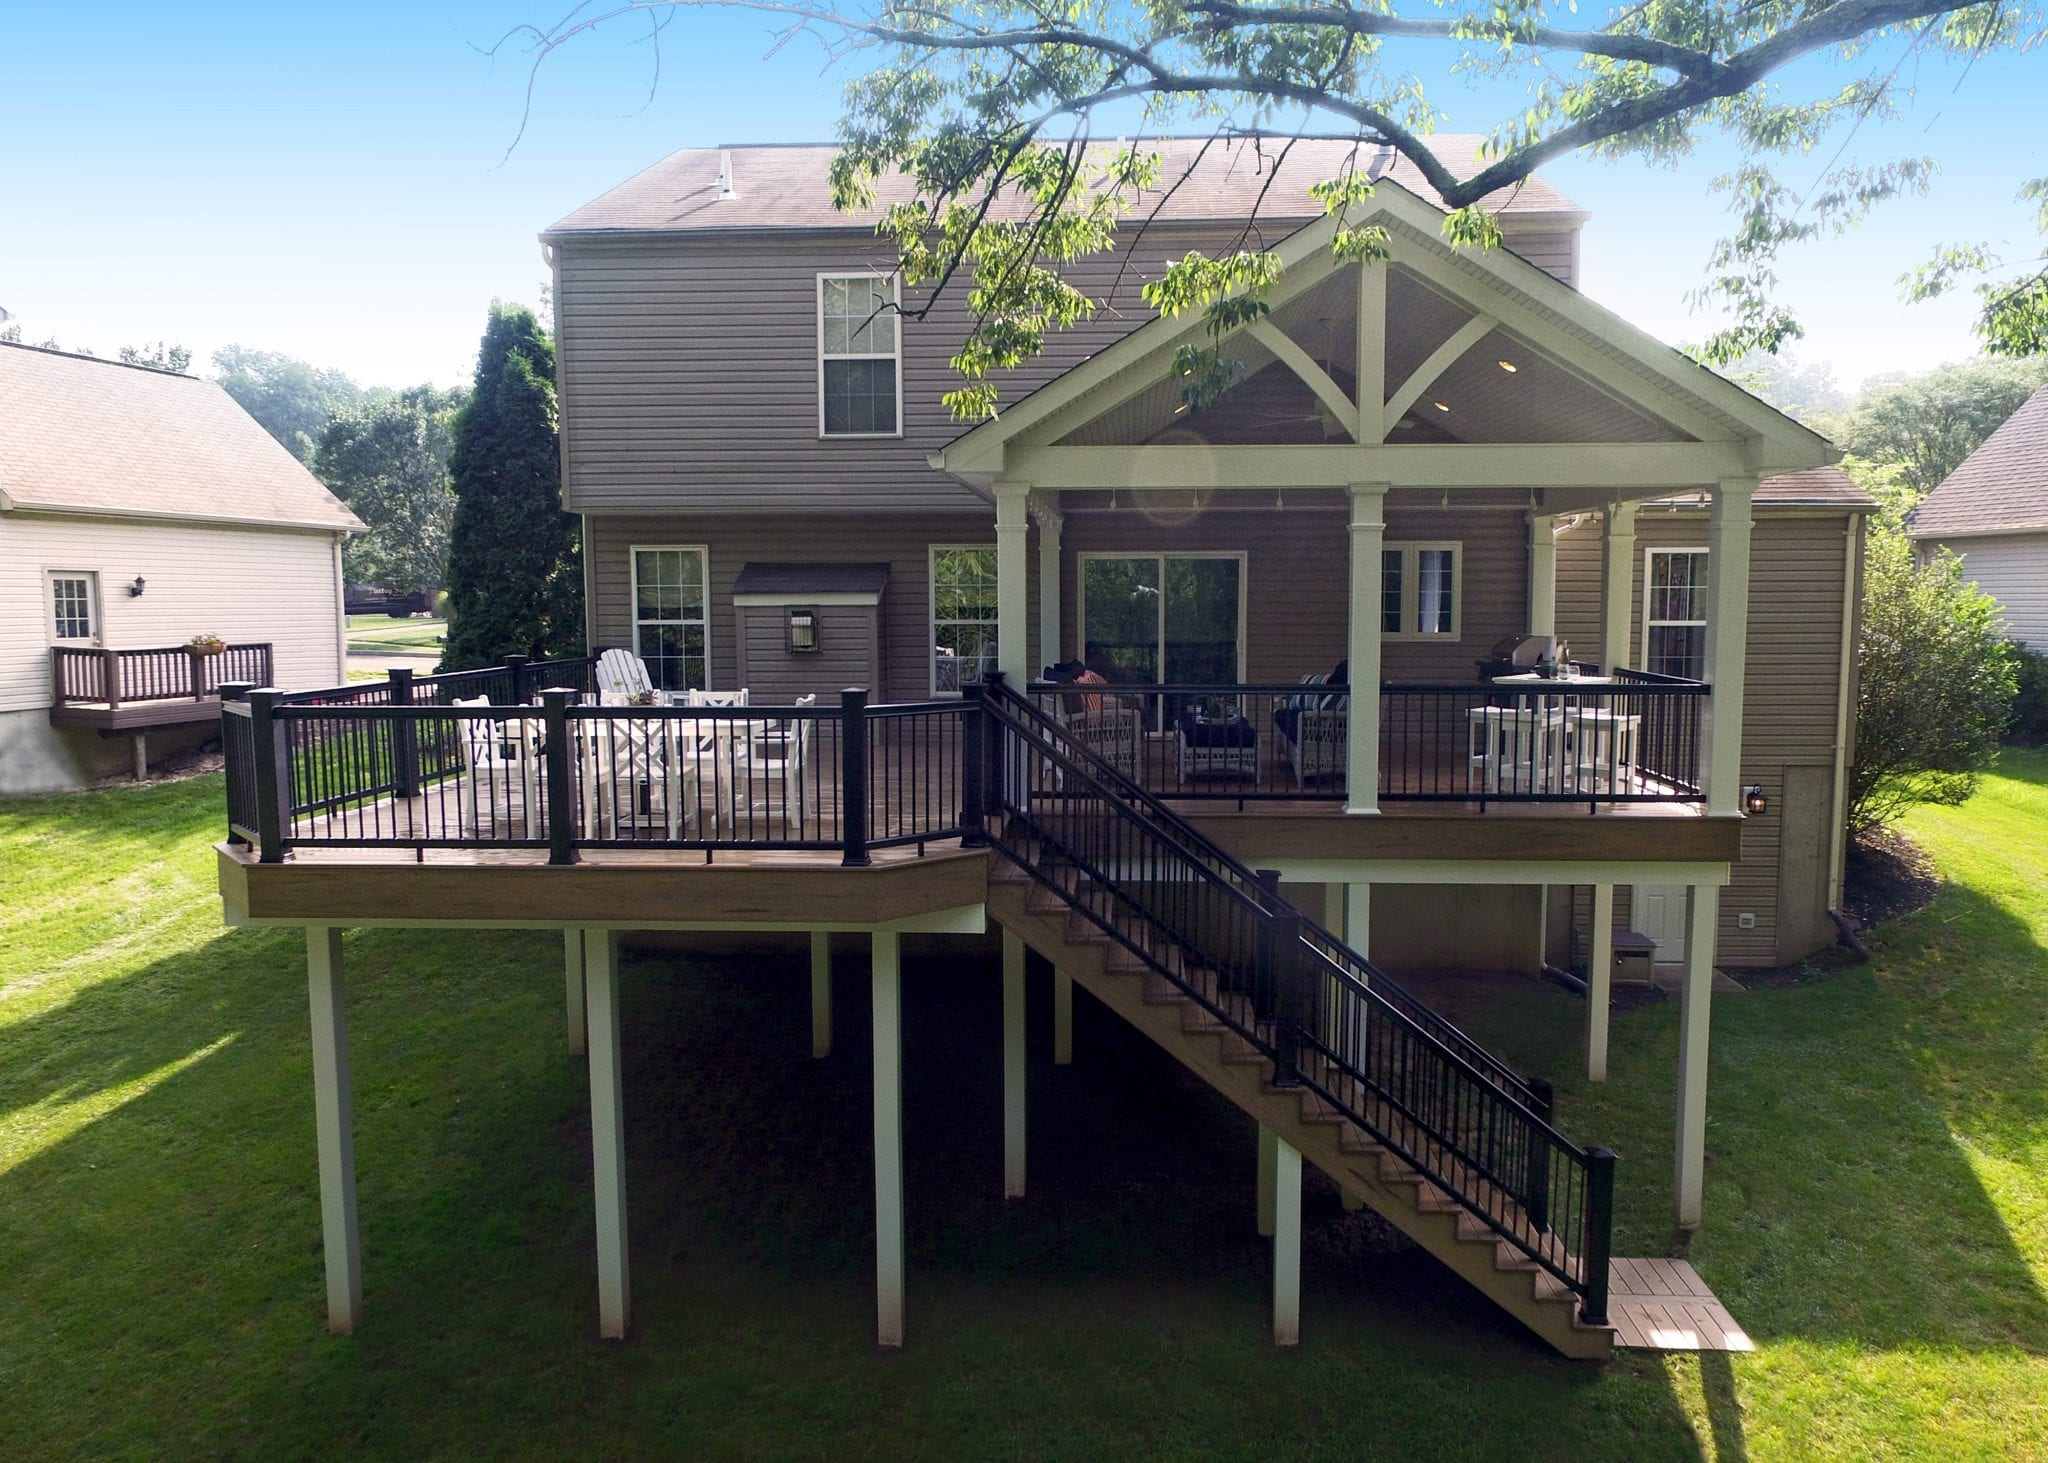 Stand Alone Deck Designs : Elevated deck designs safety features for above ground decks